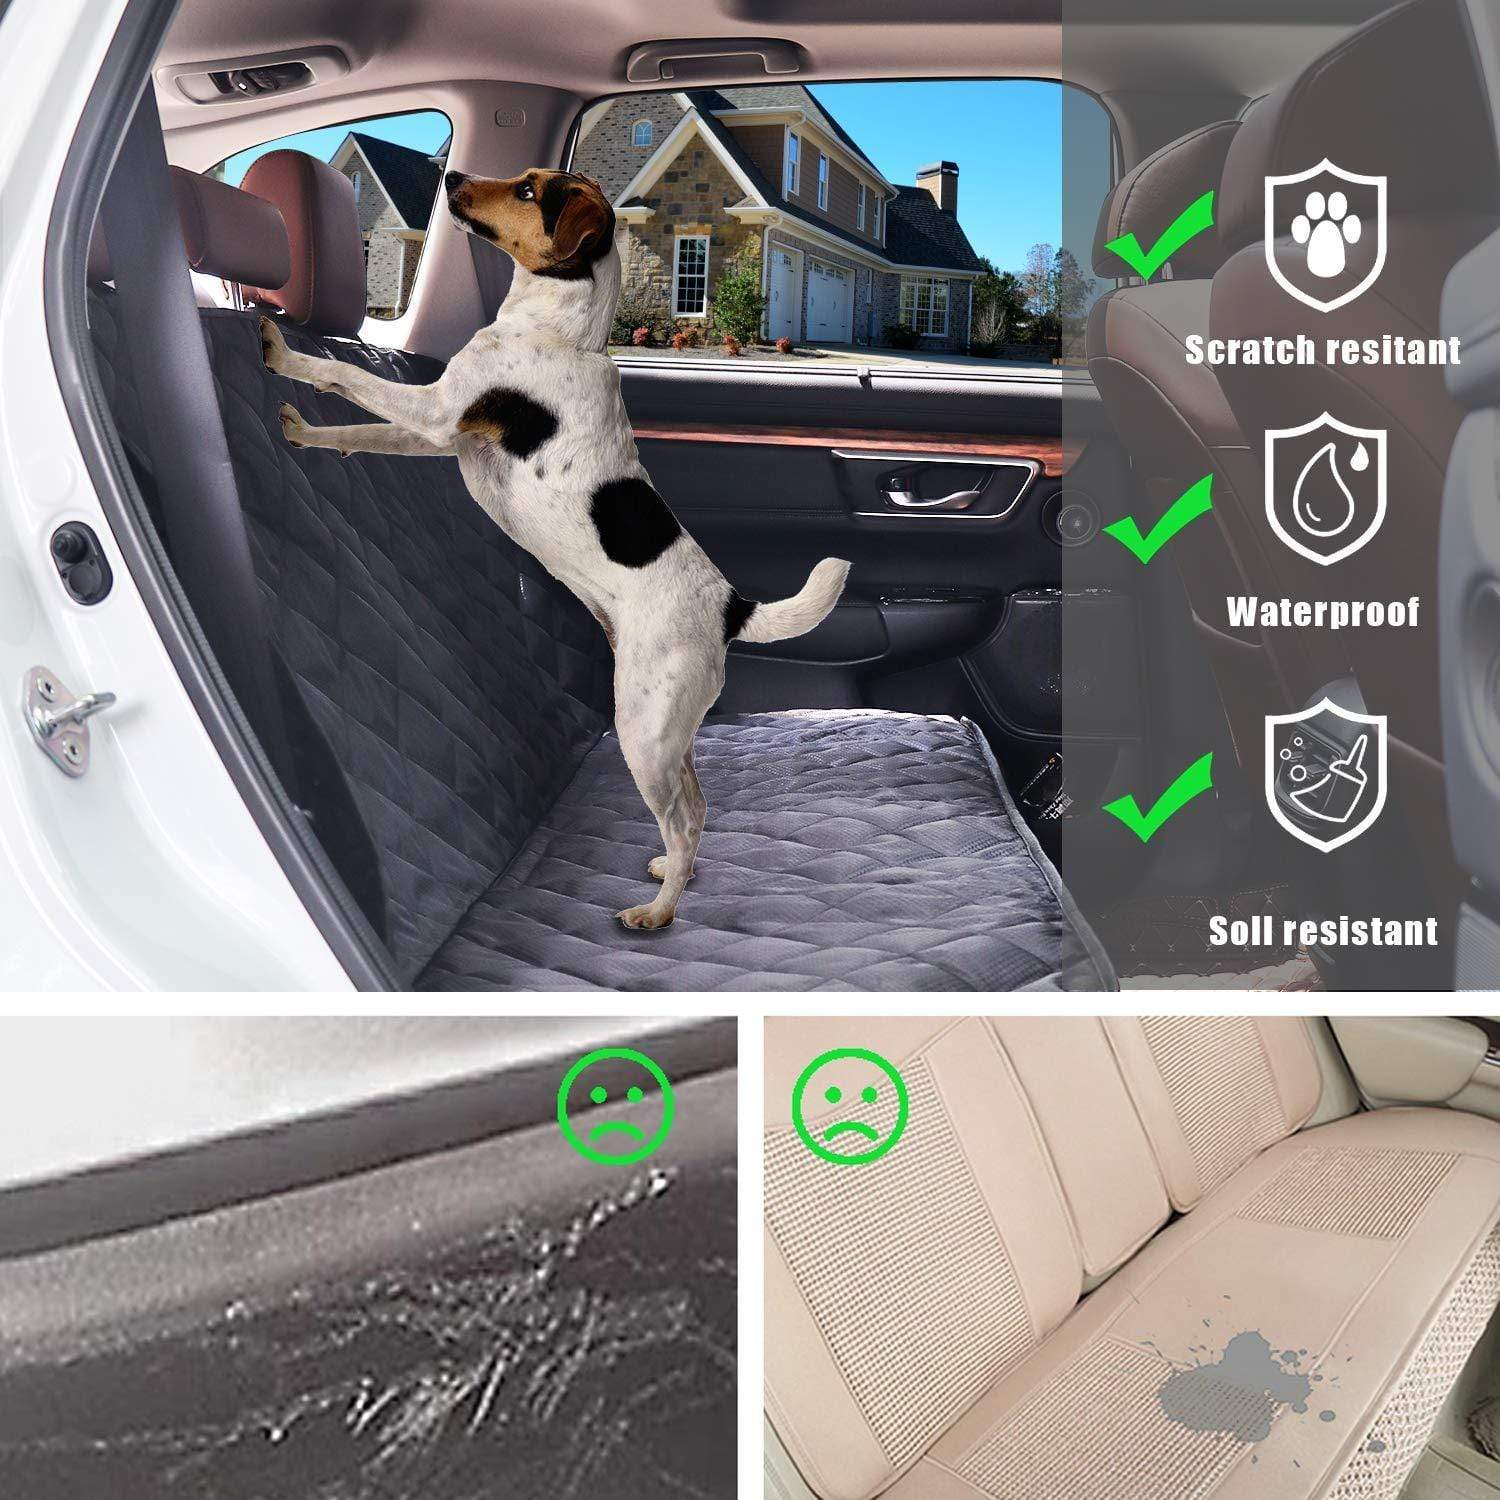 Aliexpress Pet Supplies Dog Car Seat Waterproof Protector Cover